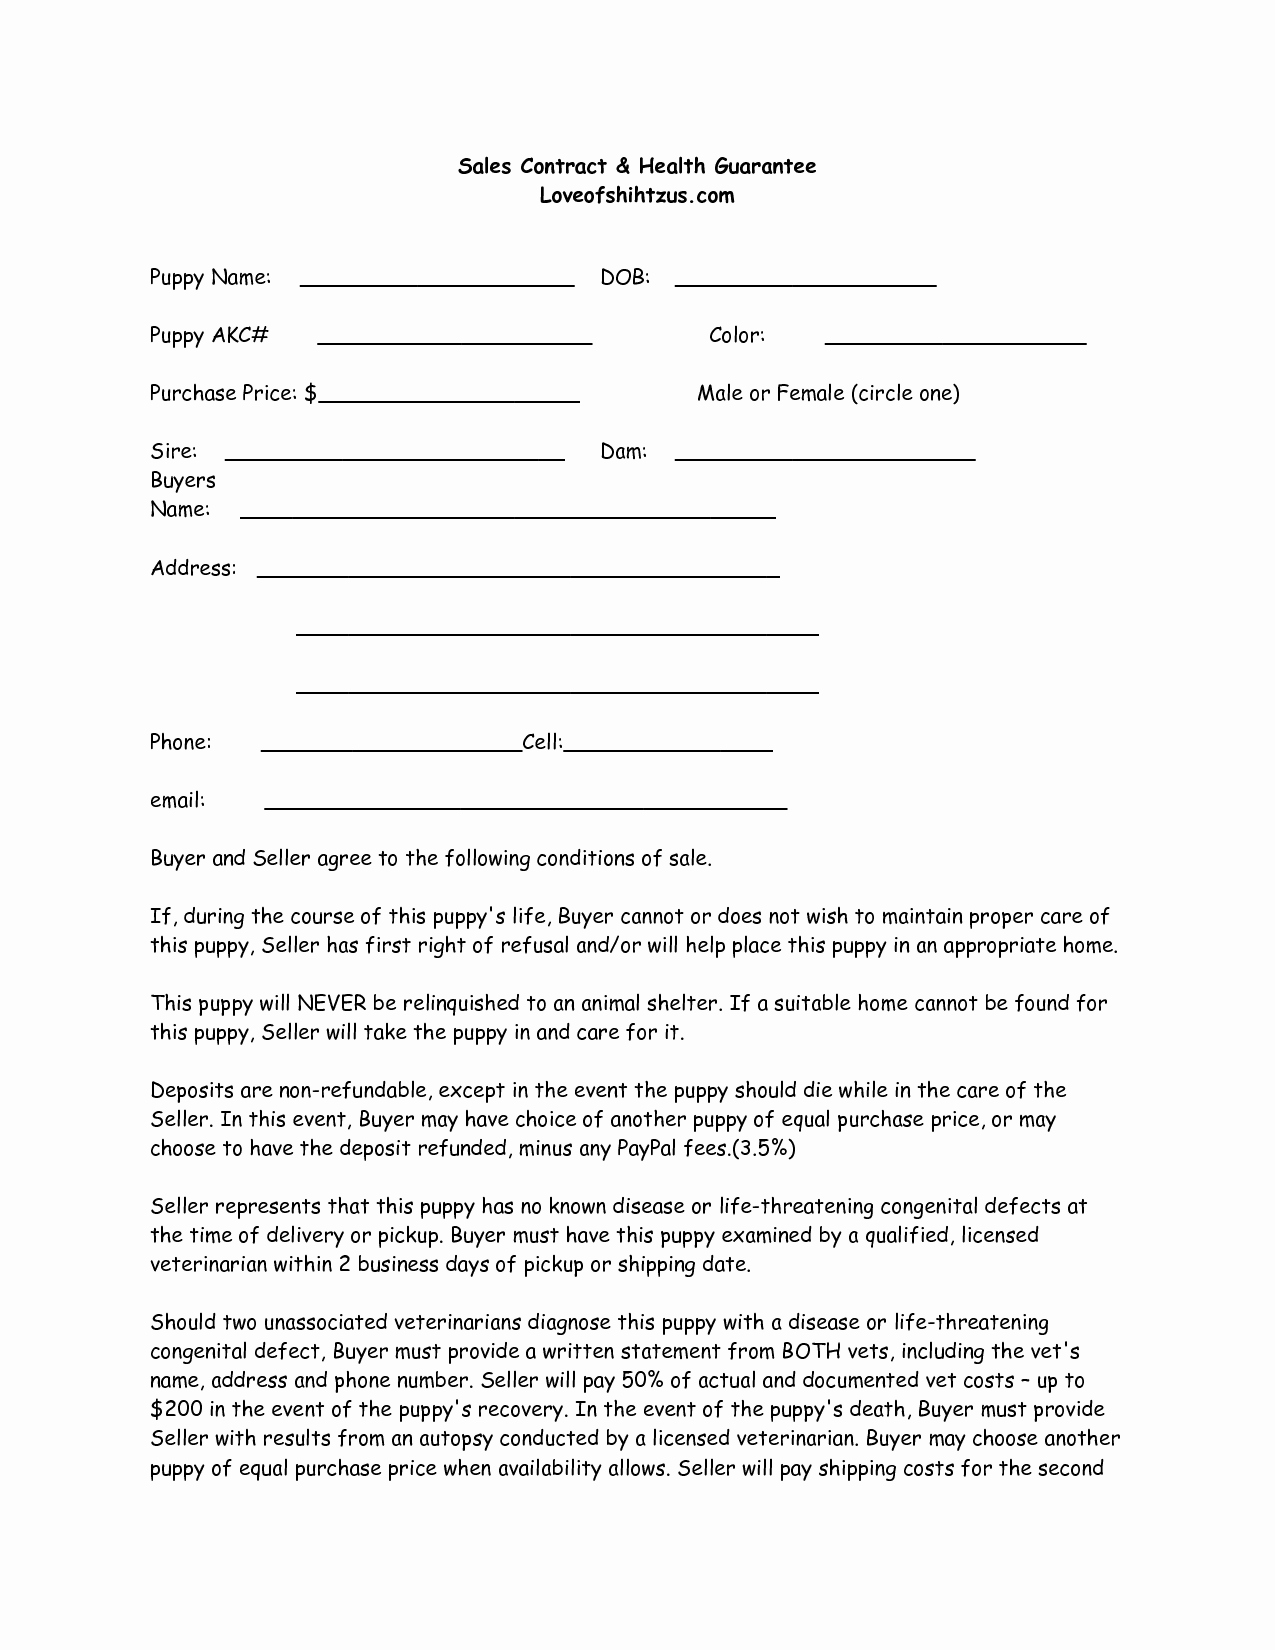 Dog Training Contract Template Fresh Puppy Sale Contract Template Success